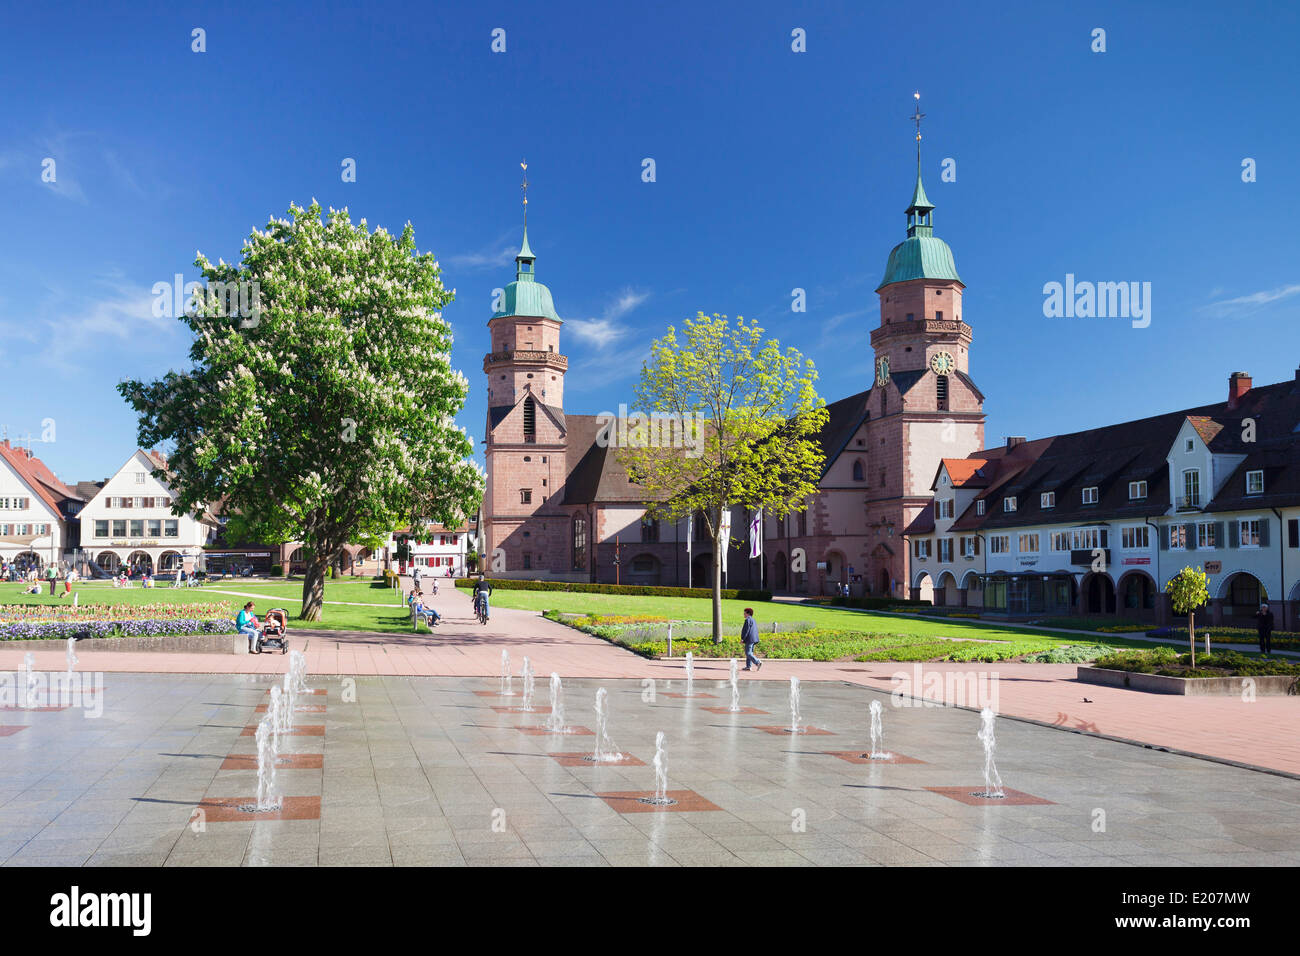 Protestant Town Church and a water garden on the marketplace, Freudenstadt, Black Forest, Baden-Württemberg, Germany Stock Photo